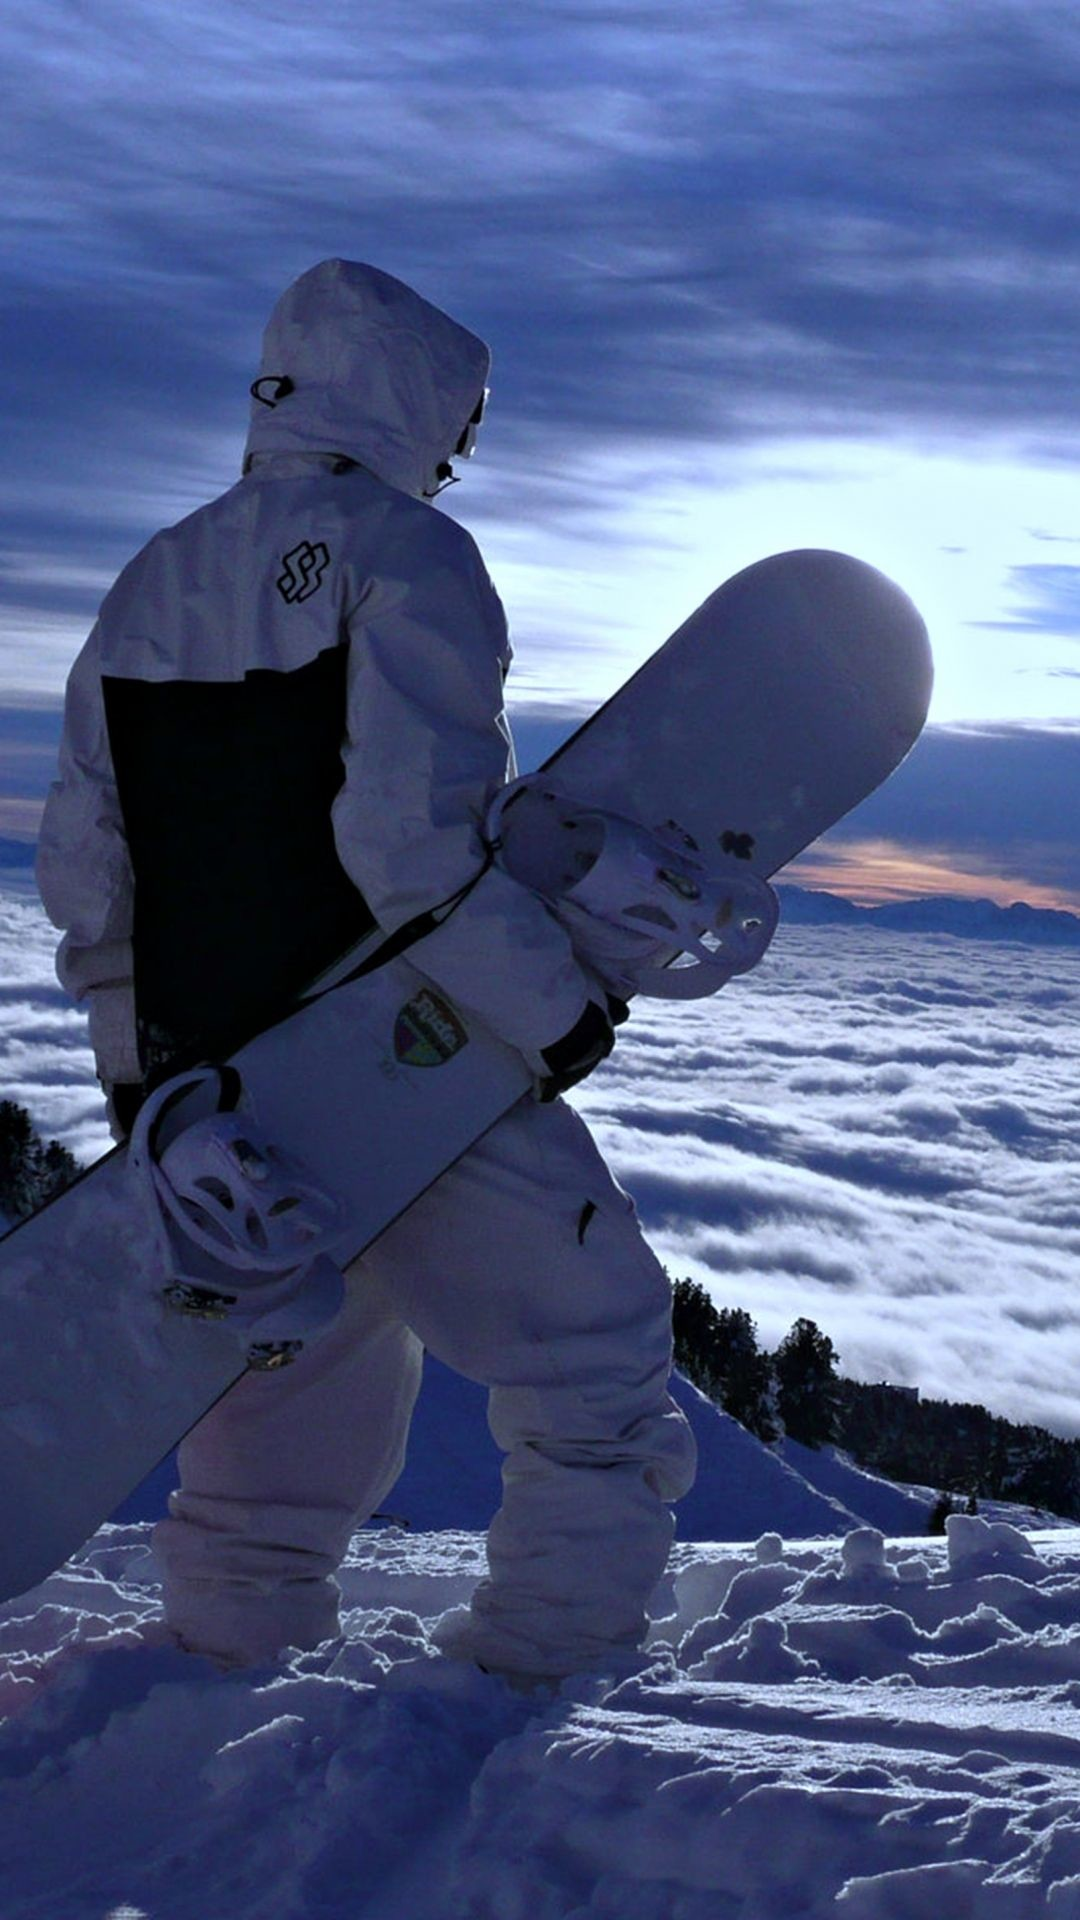 snowboard wallpaper (83+ images)